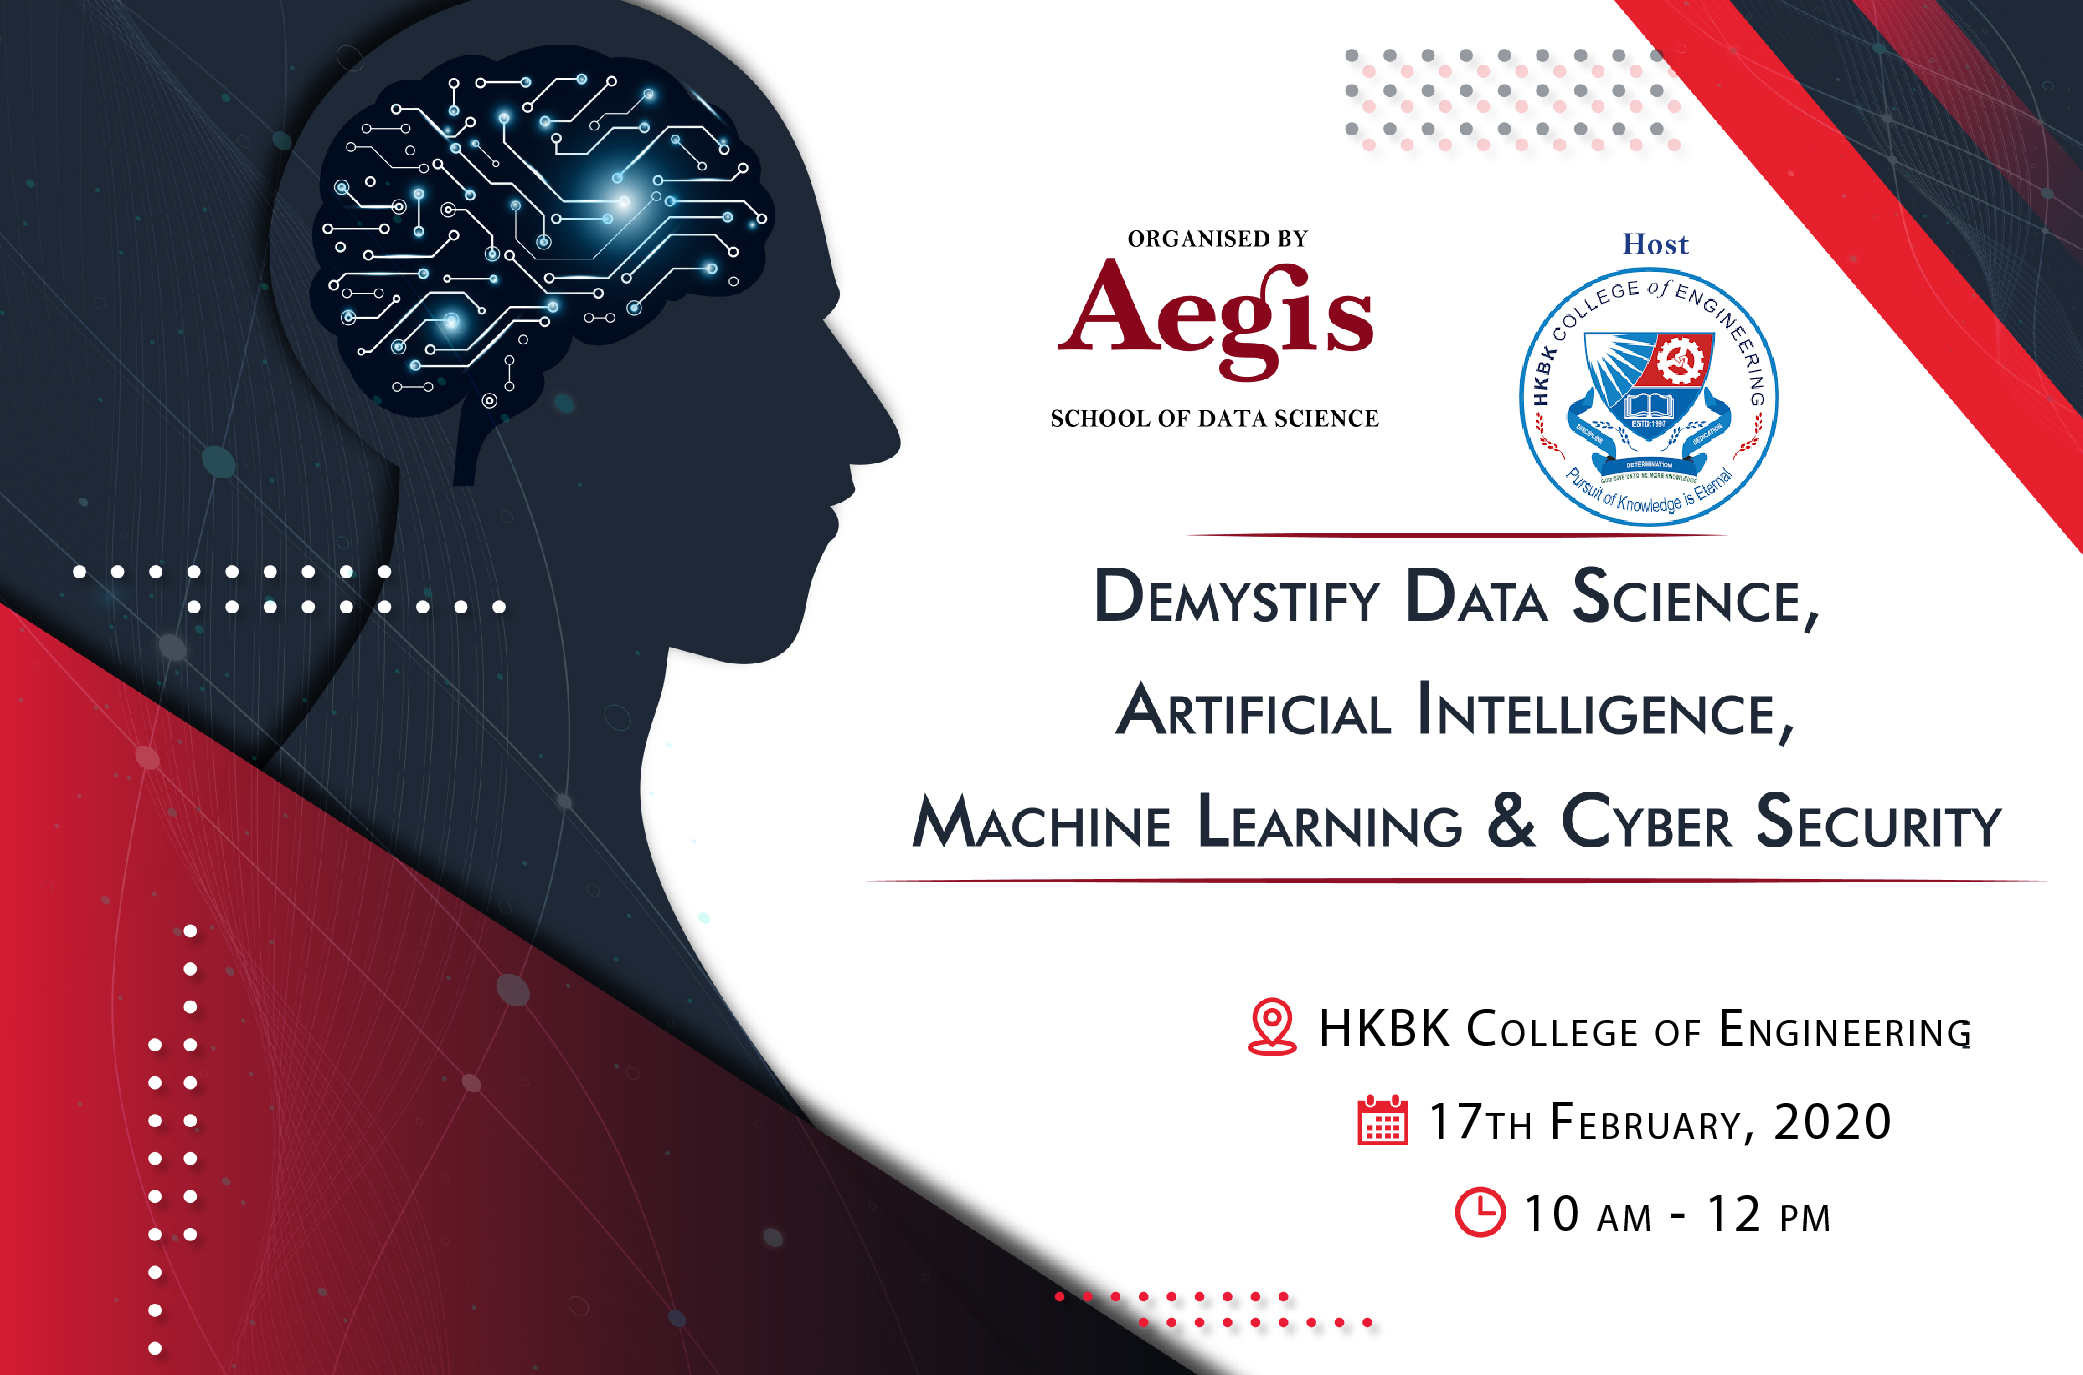 Demystify Data Science, ML, AI, & CS & Day at HKBK college, Bangalore